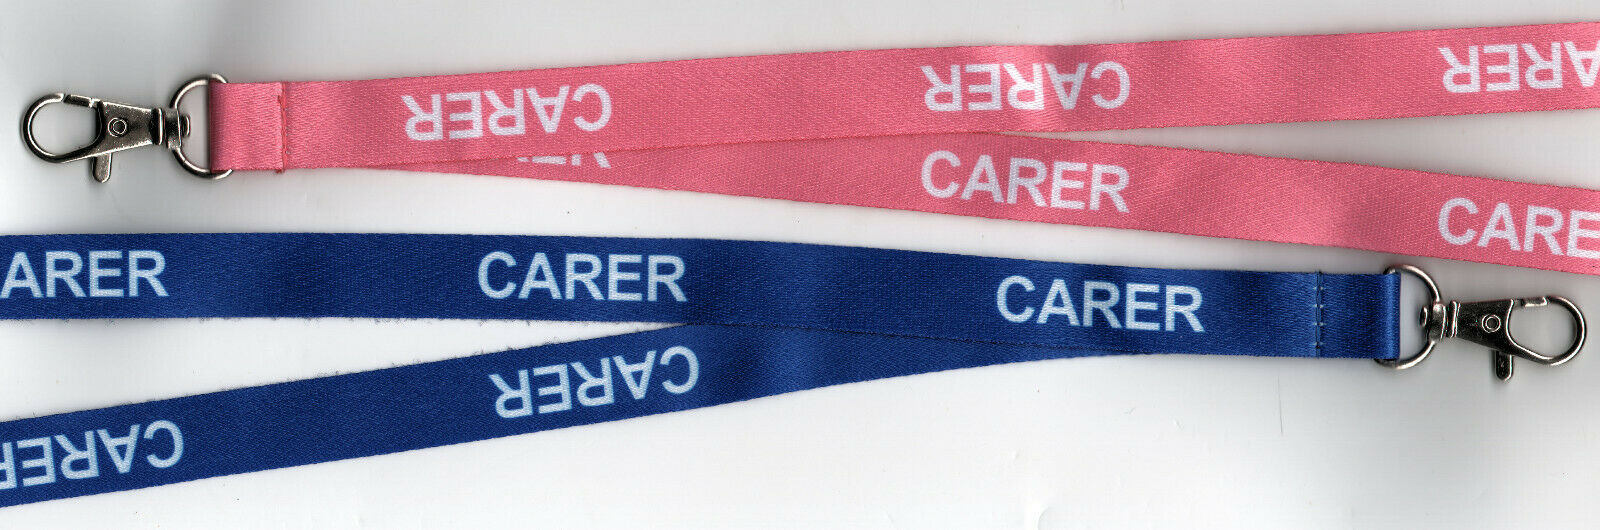 1 CARER Blue or Pink Printed Caring Safety Lanyard with Breakaway Clip FREE UKPP